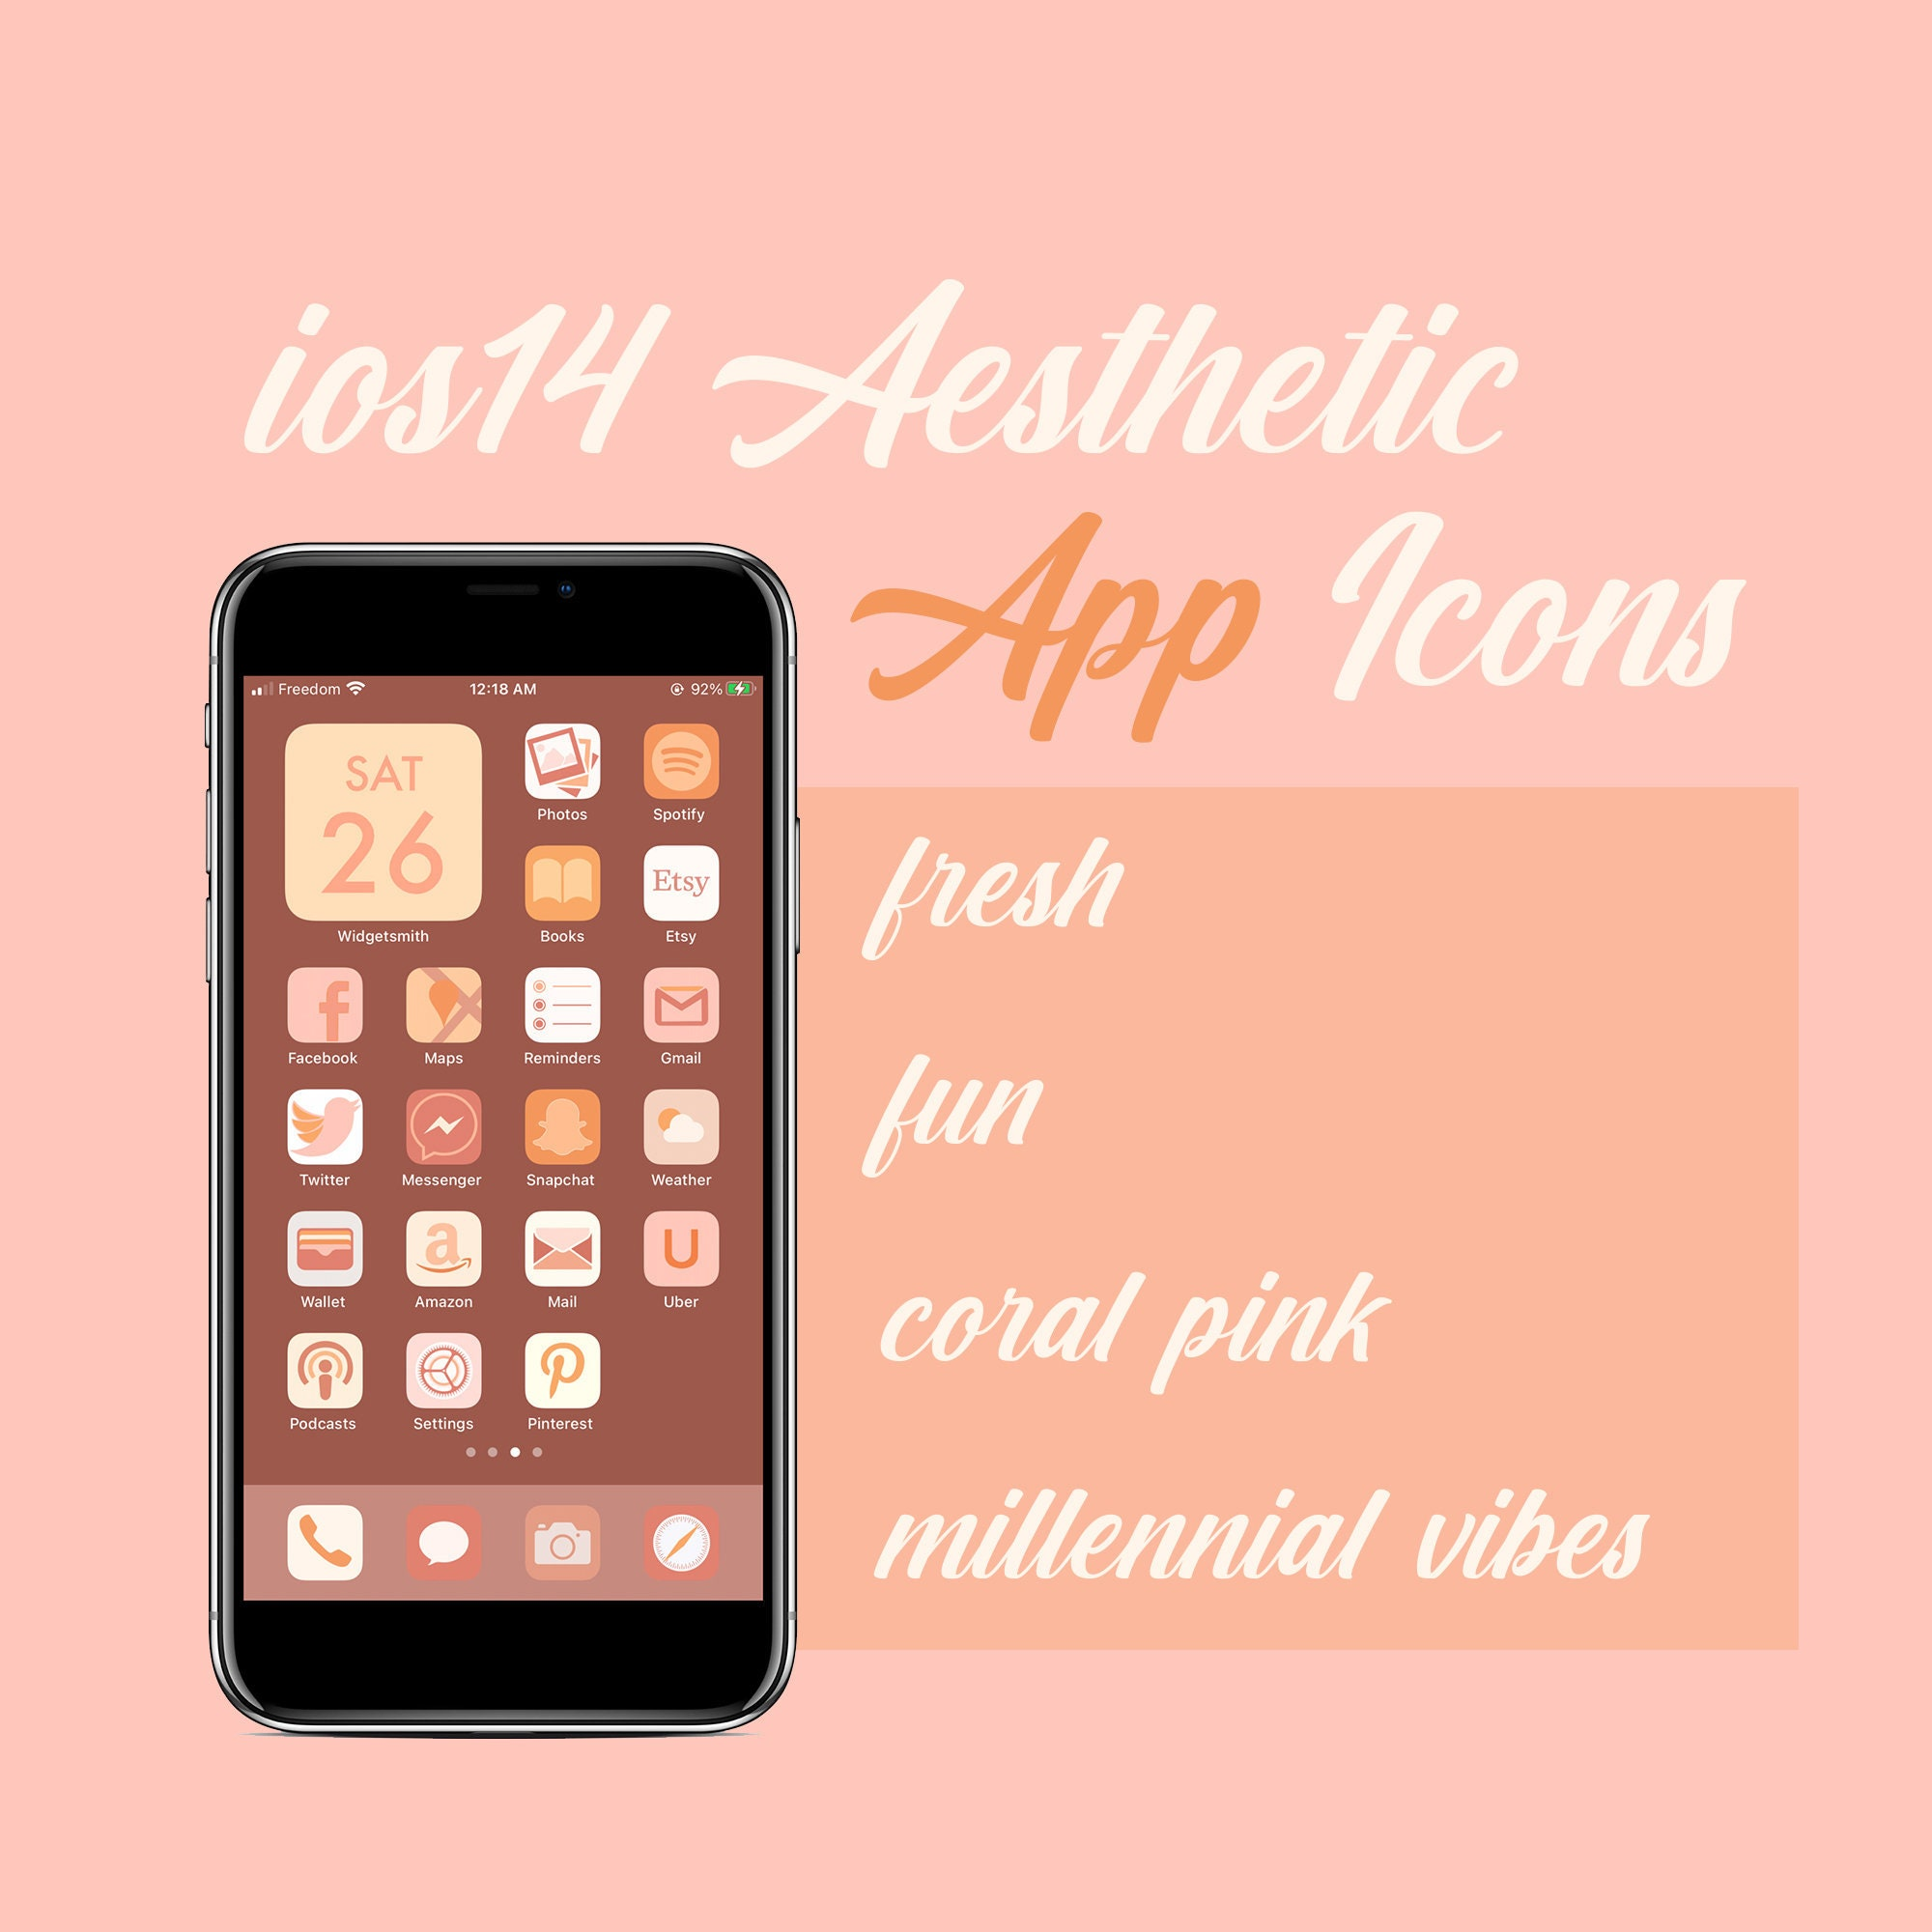 ios 14 aesthetic app icons luxe fresh fun coral pink etsy ios 14 aesthetic app icons luxe fresh fun coral pink millennial unique